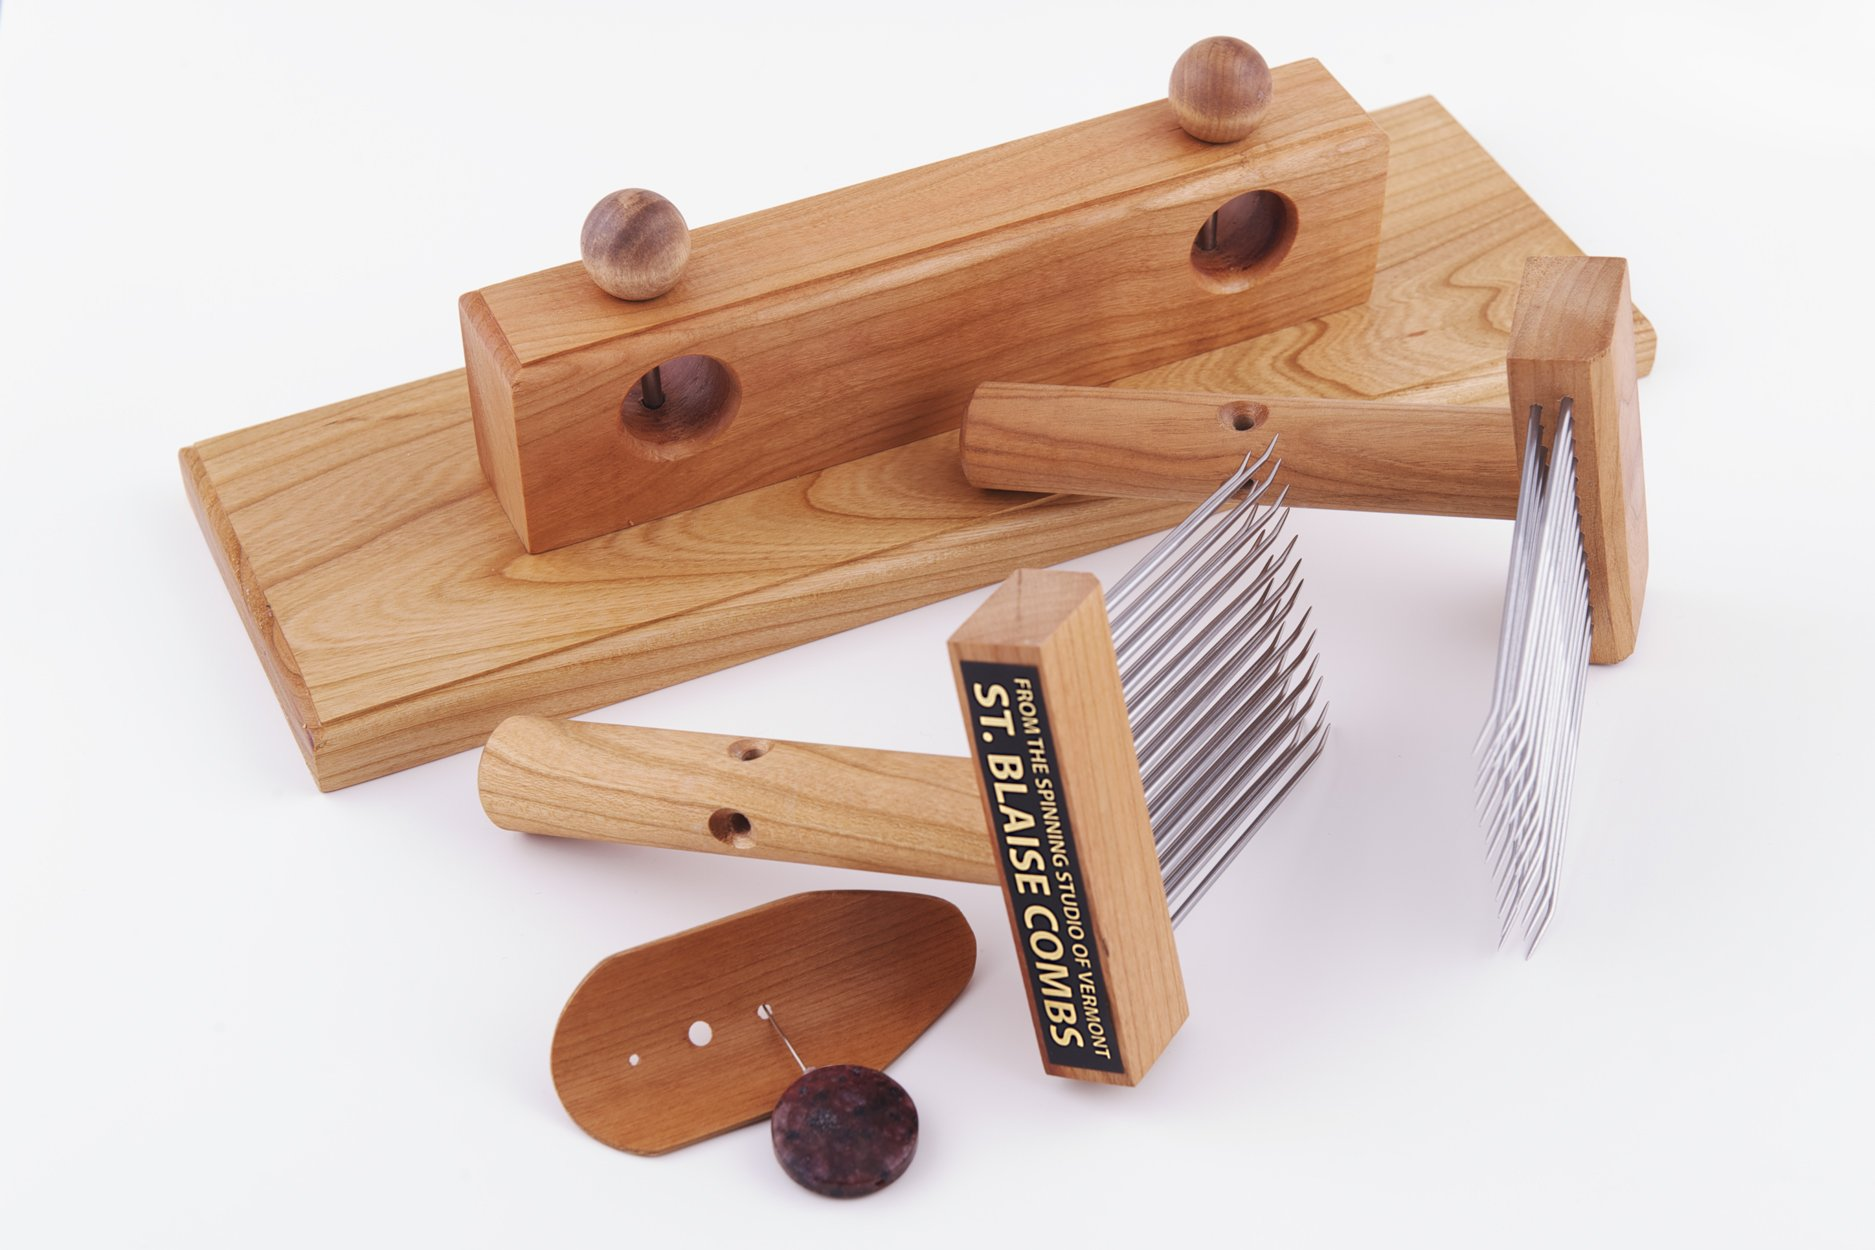 St. Blaise Combs with Table Mount and Diz by Robin Russo by St. Blaise Combs